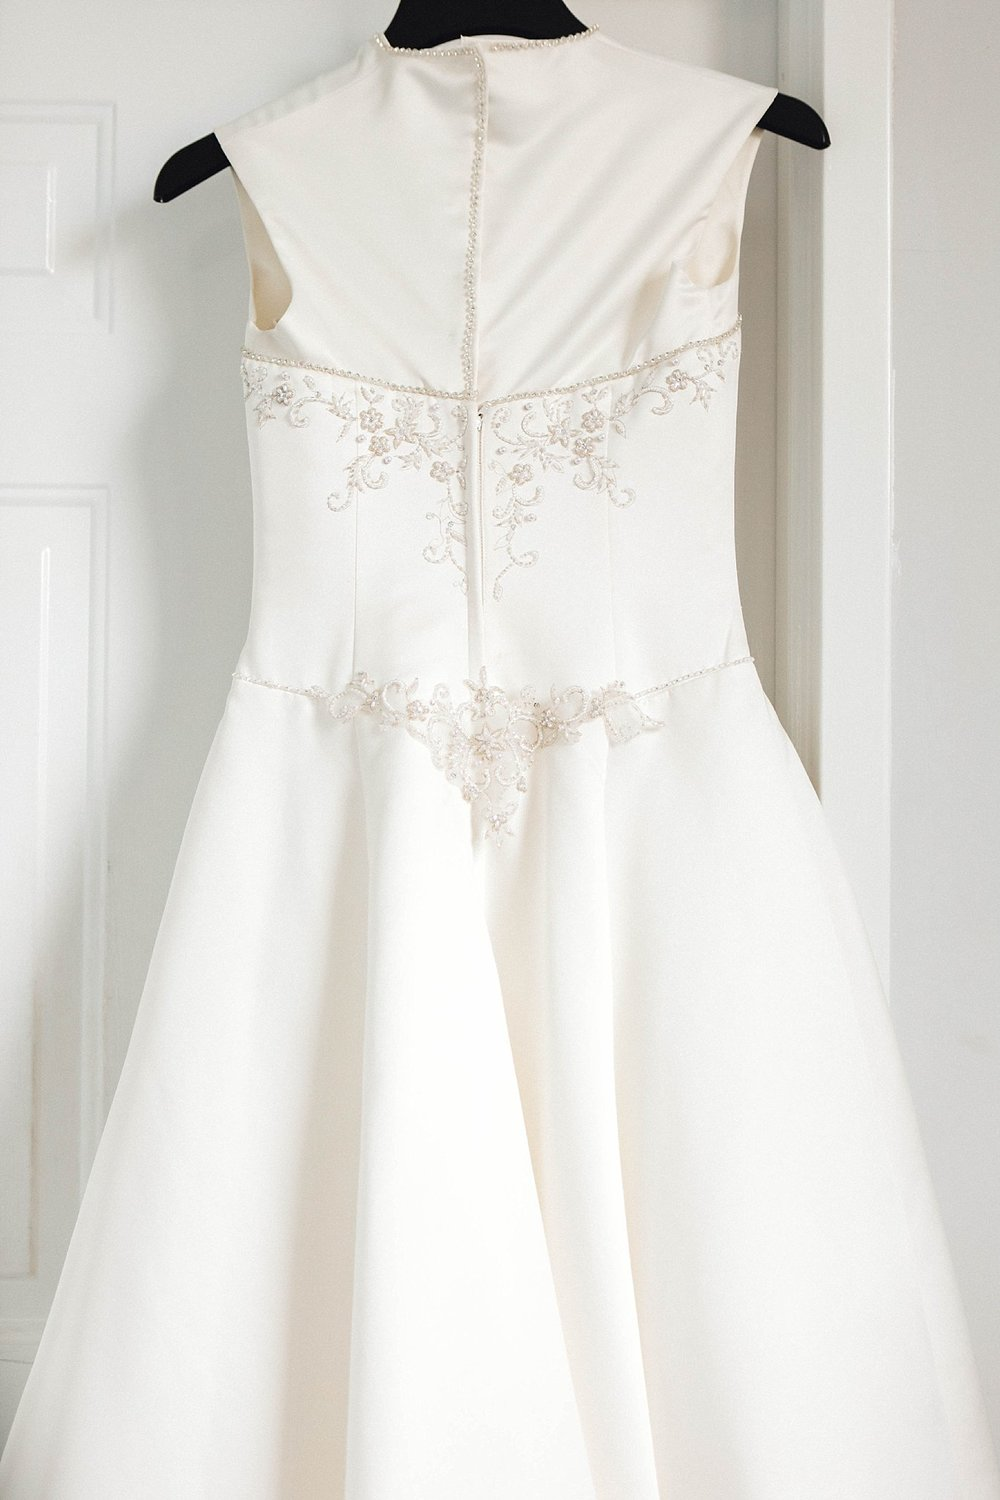 A satin wedding dress with embellishments and pearls